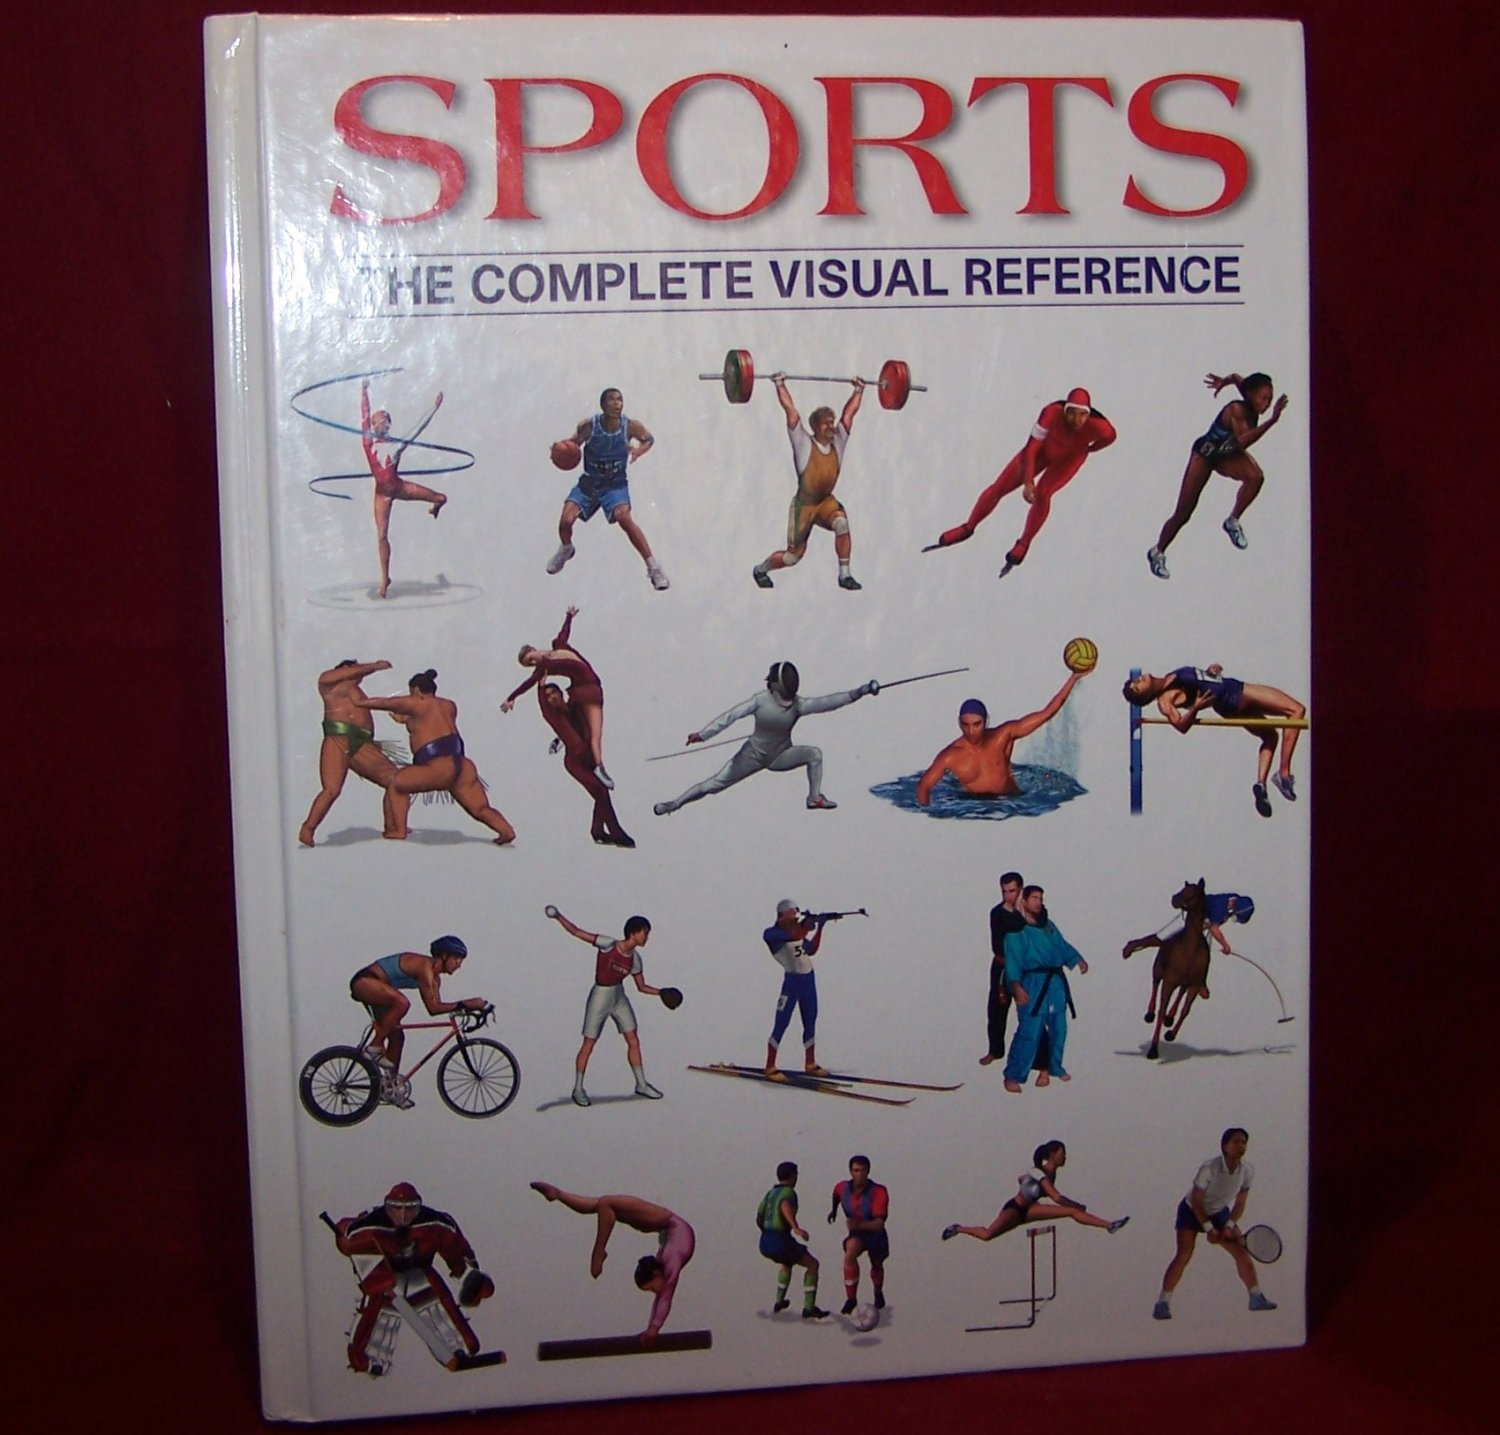 Sports: The Complete Visual Reference by Francois FortinOther Products from patandtonytreasures (View All)